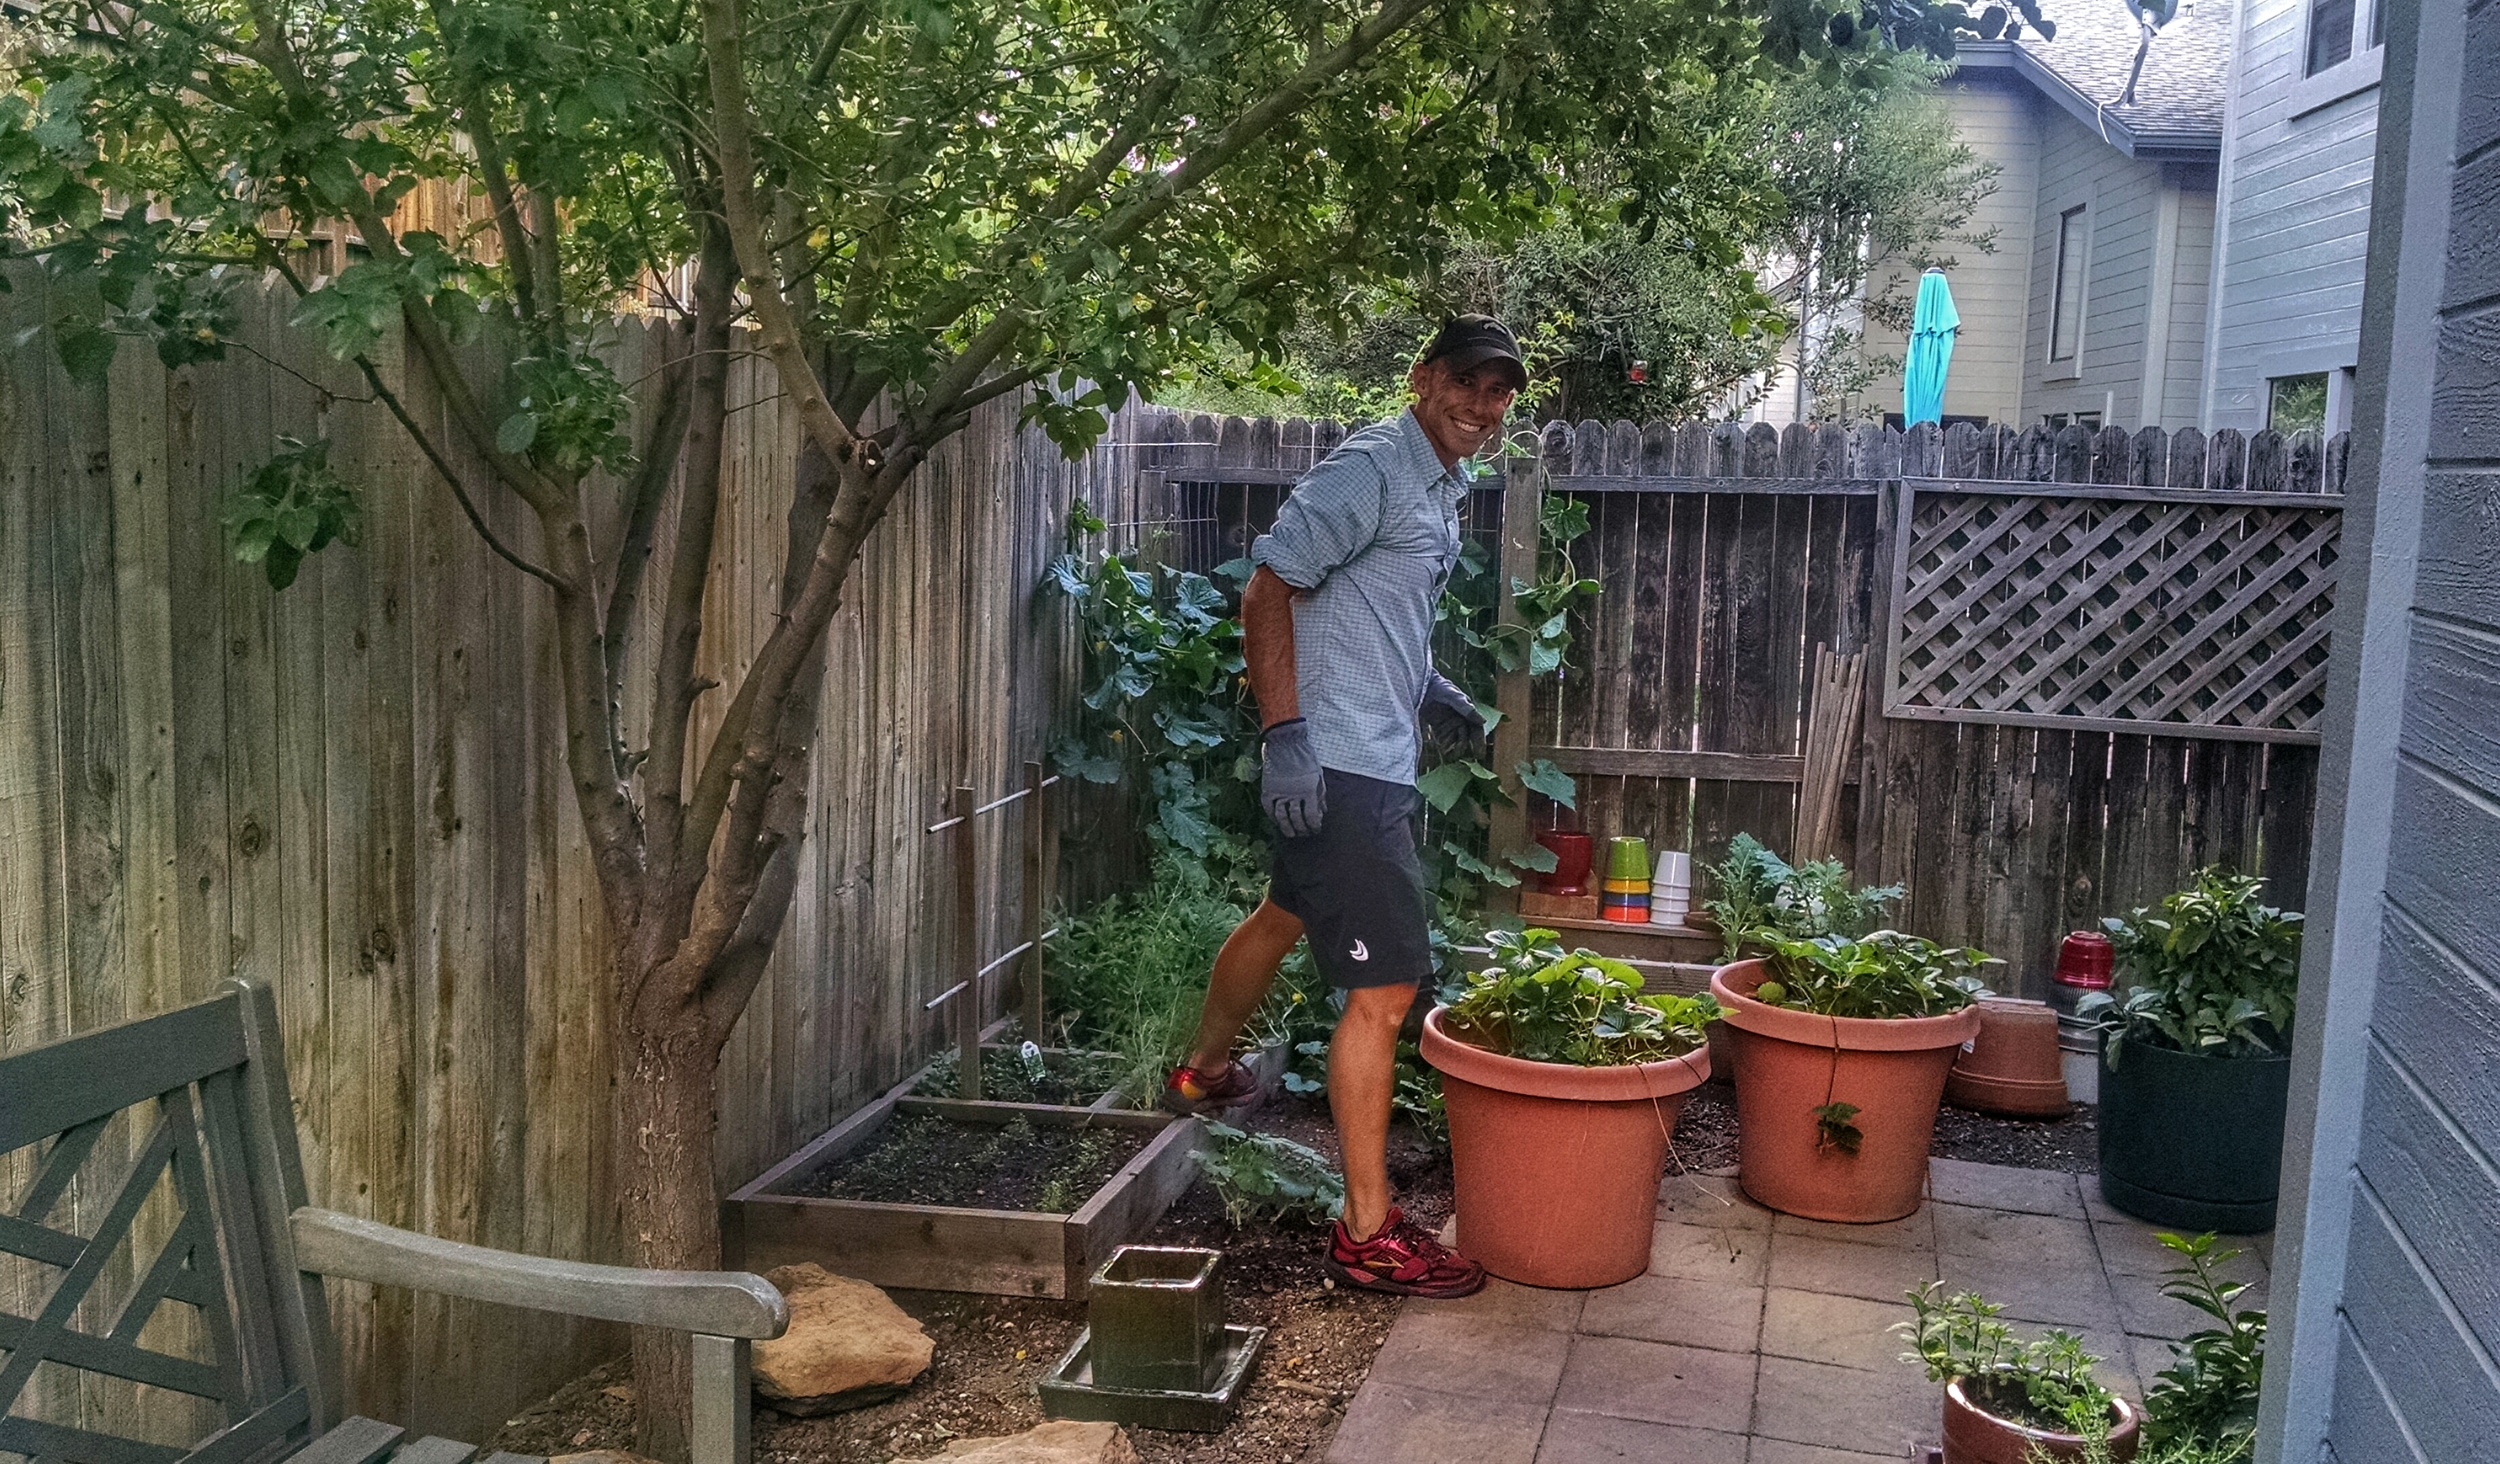 Here MattyB is working in our tiny little garden. We don't have a large backyard, but I am amazed at how much we can grow in such a tiny space. And it is so rewarding to be able to step right into your backyard for fresh produce for your meals.